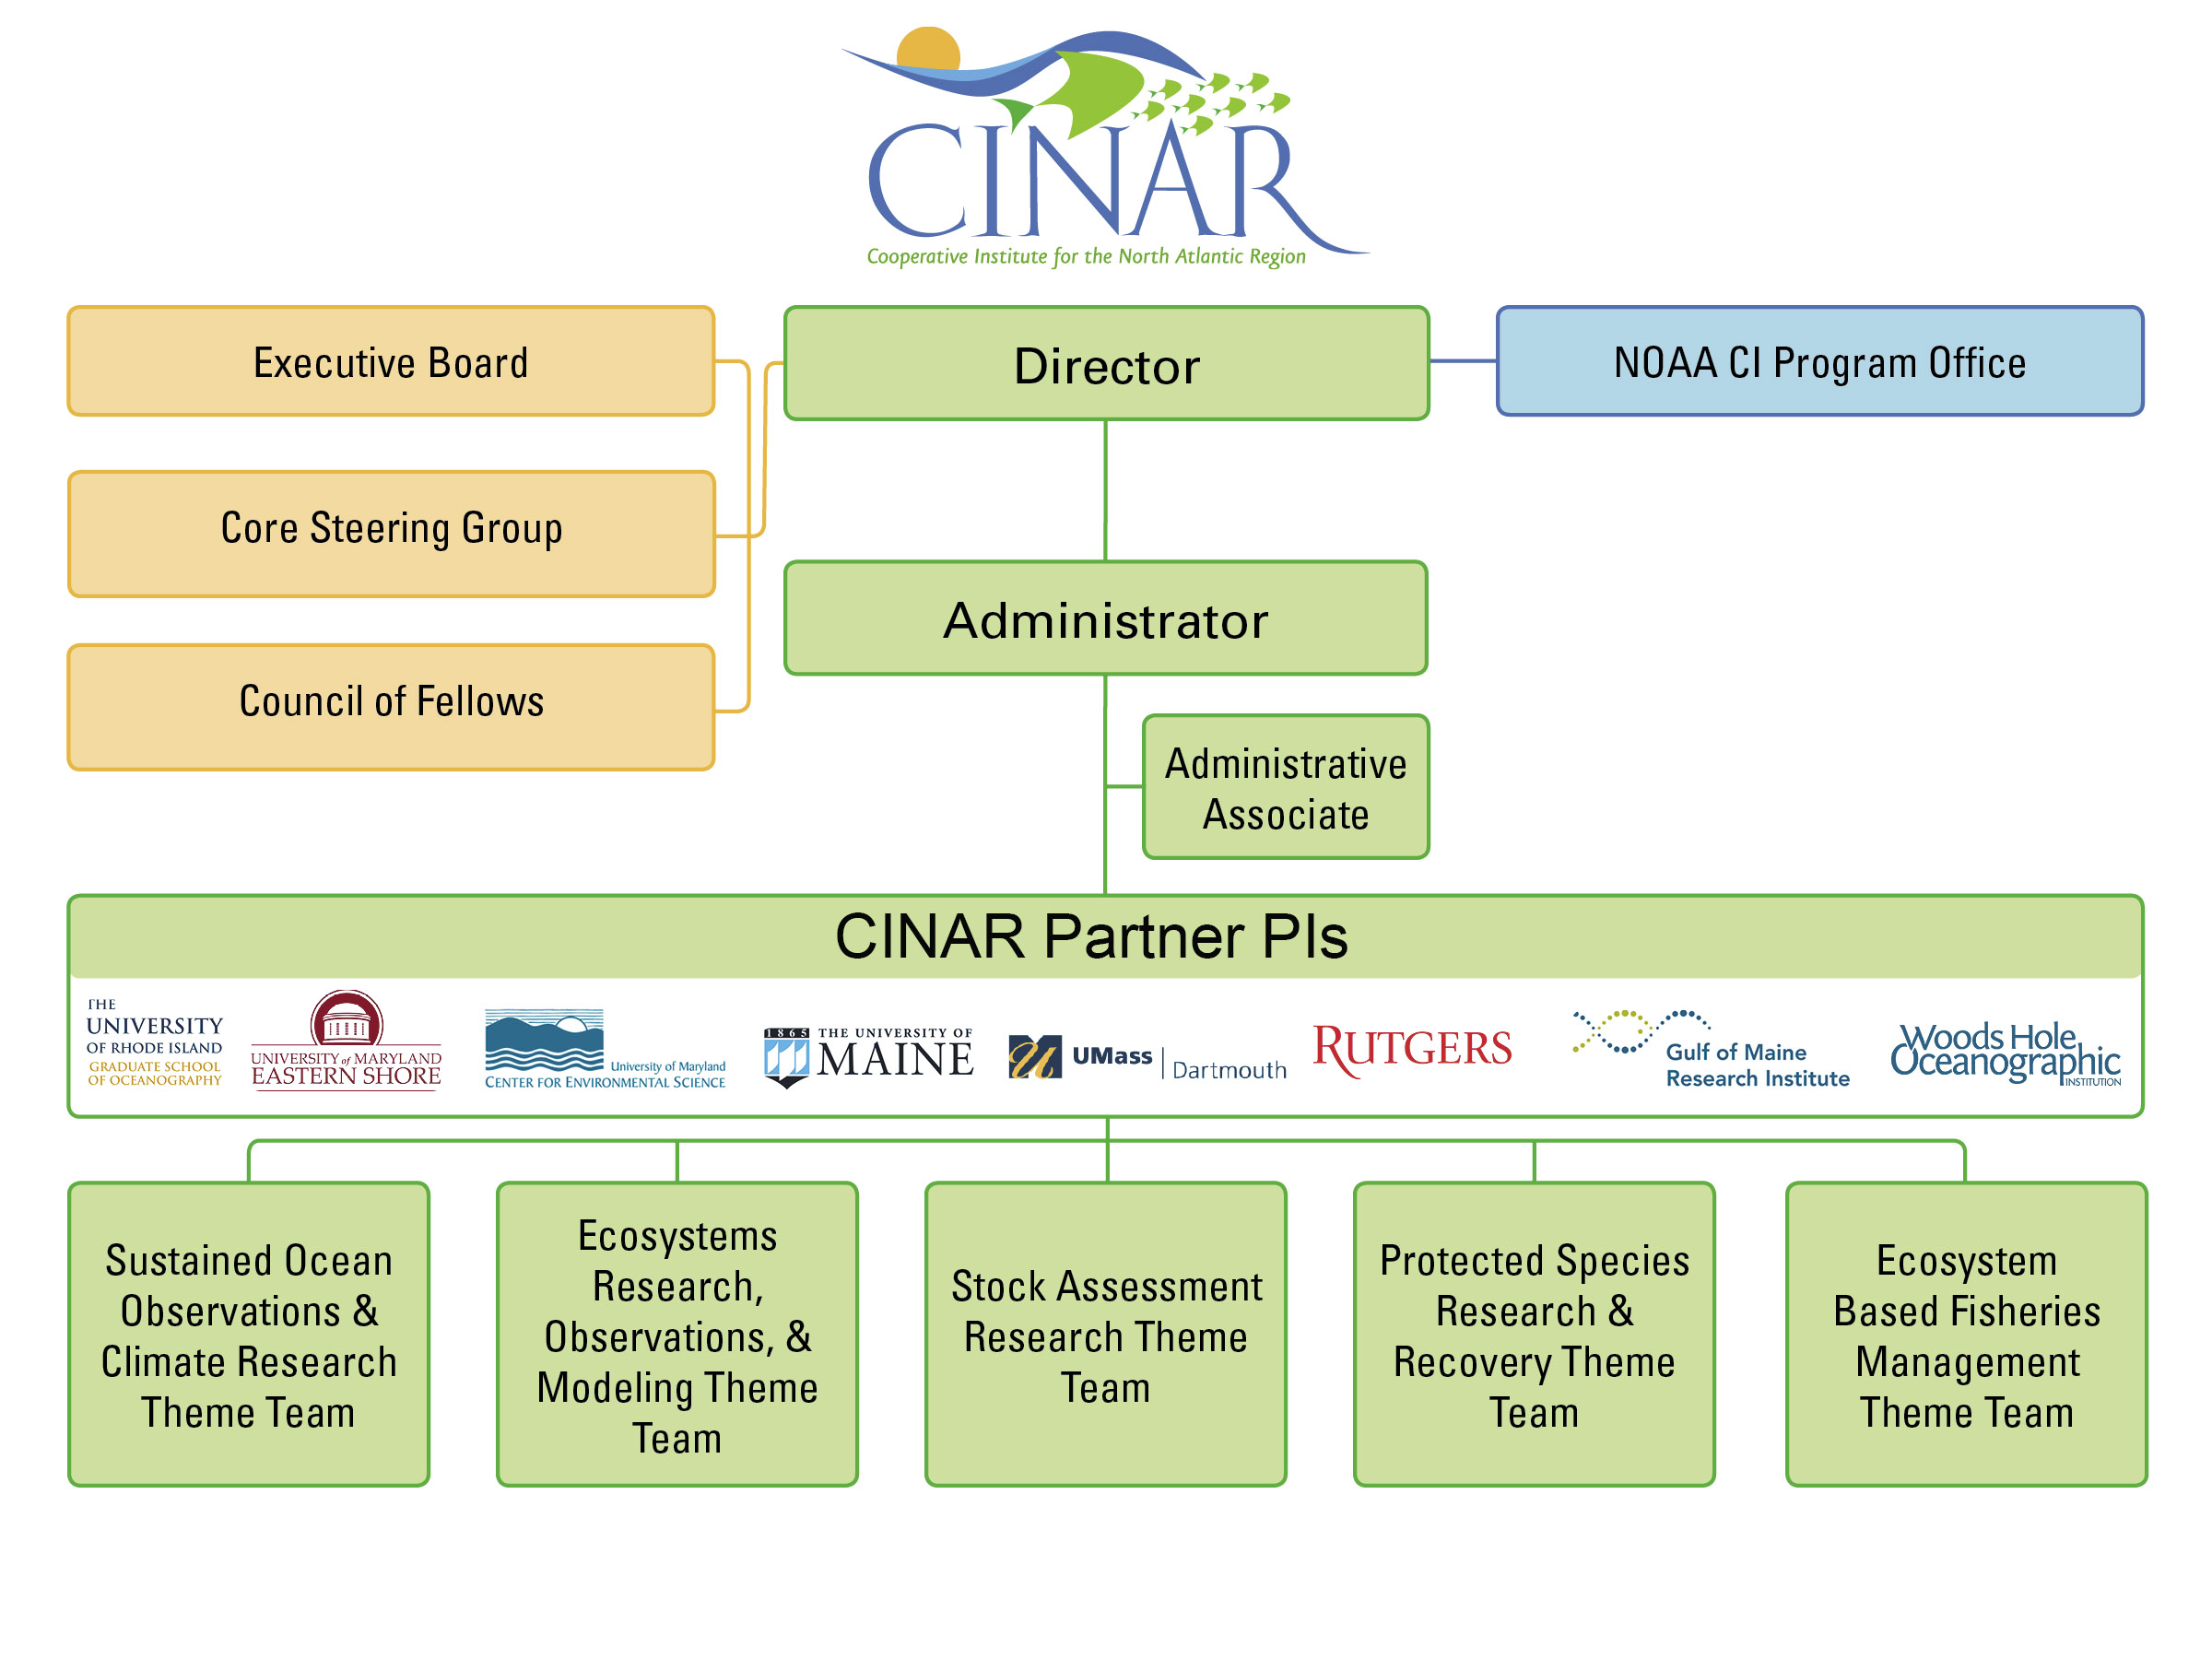 CINAR comprises a regional consortium of eight University partners located throughout the NEUS LME region, from UMES in Princess Anne, Maryland to UMaine in Orono, ME. Partners are located in close proximity to NOAA labs and fisheries office, facilitating collaborative research between NOAA and academic PIs.